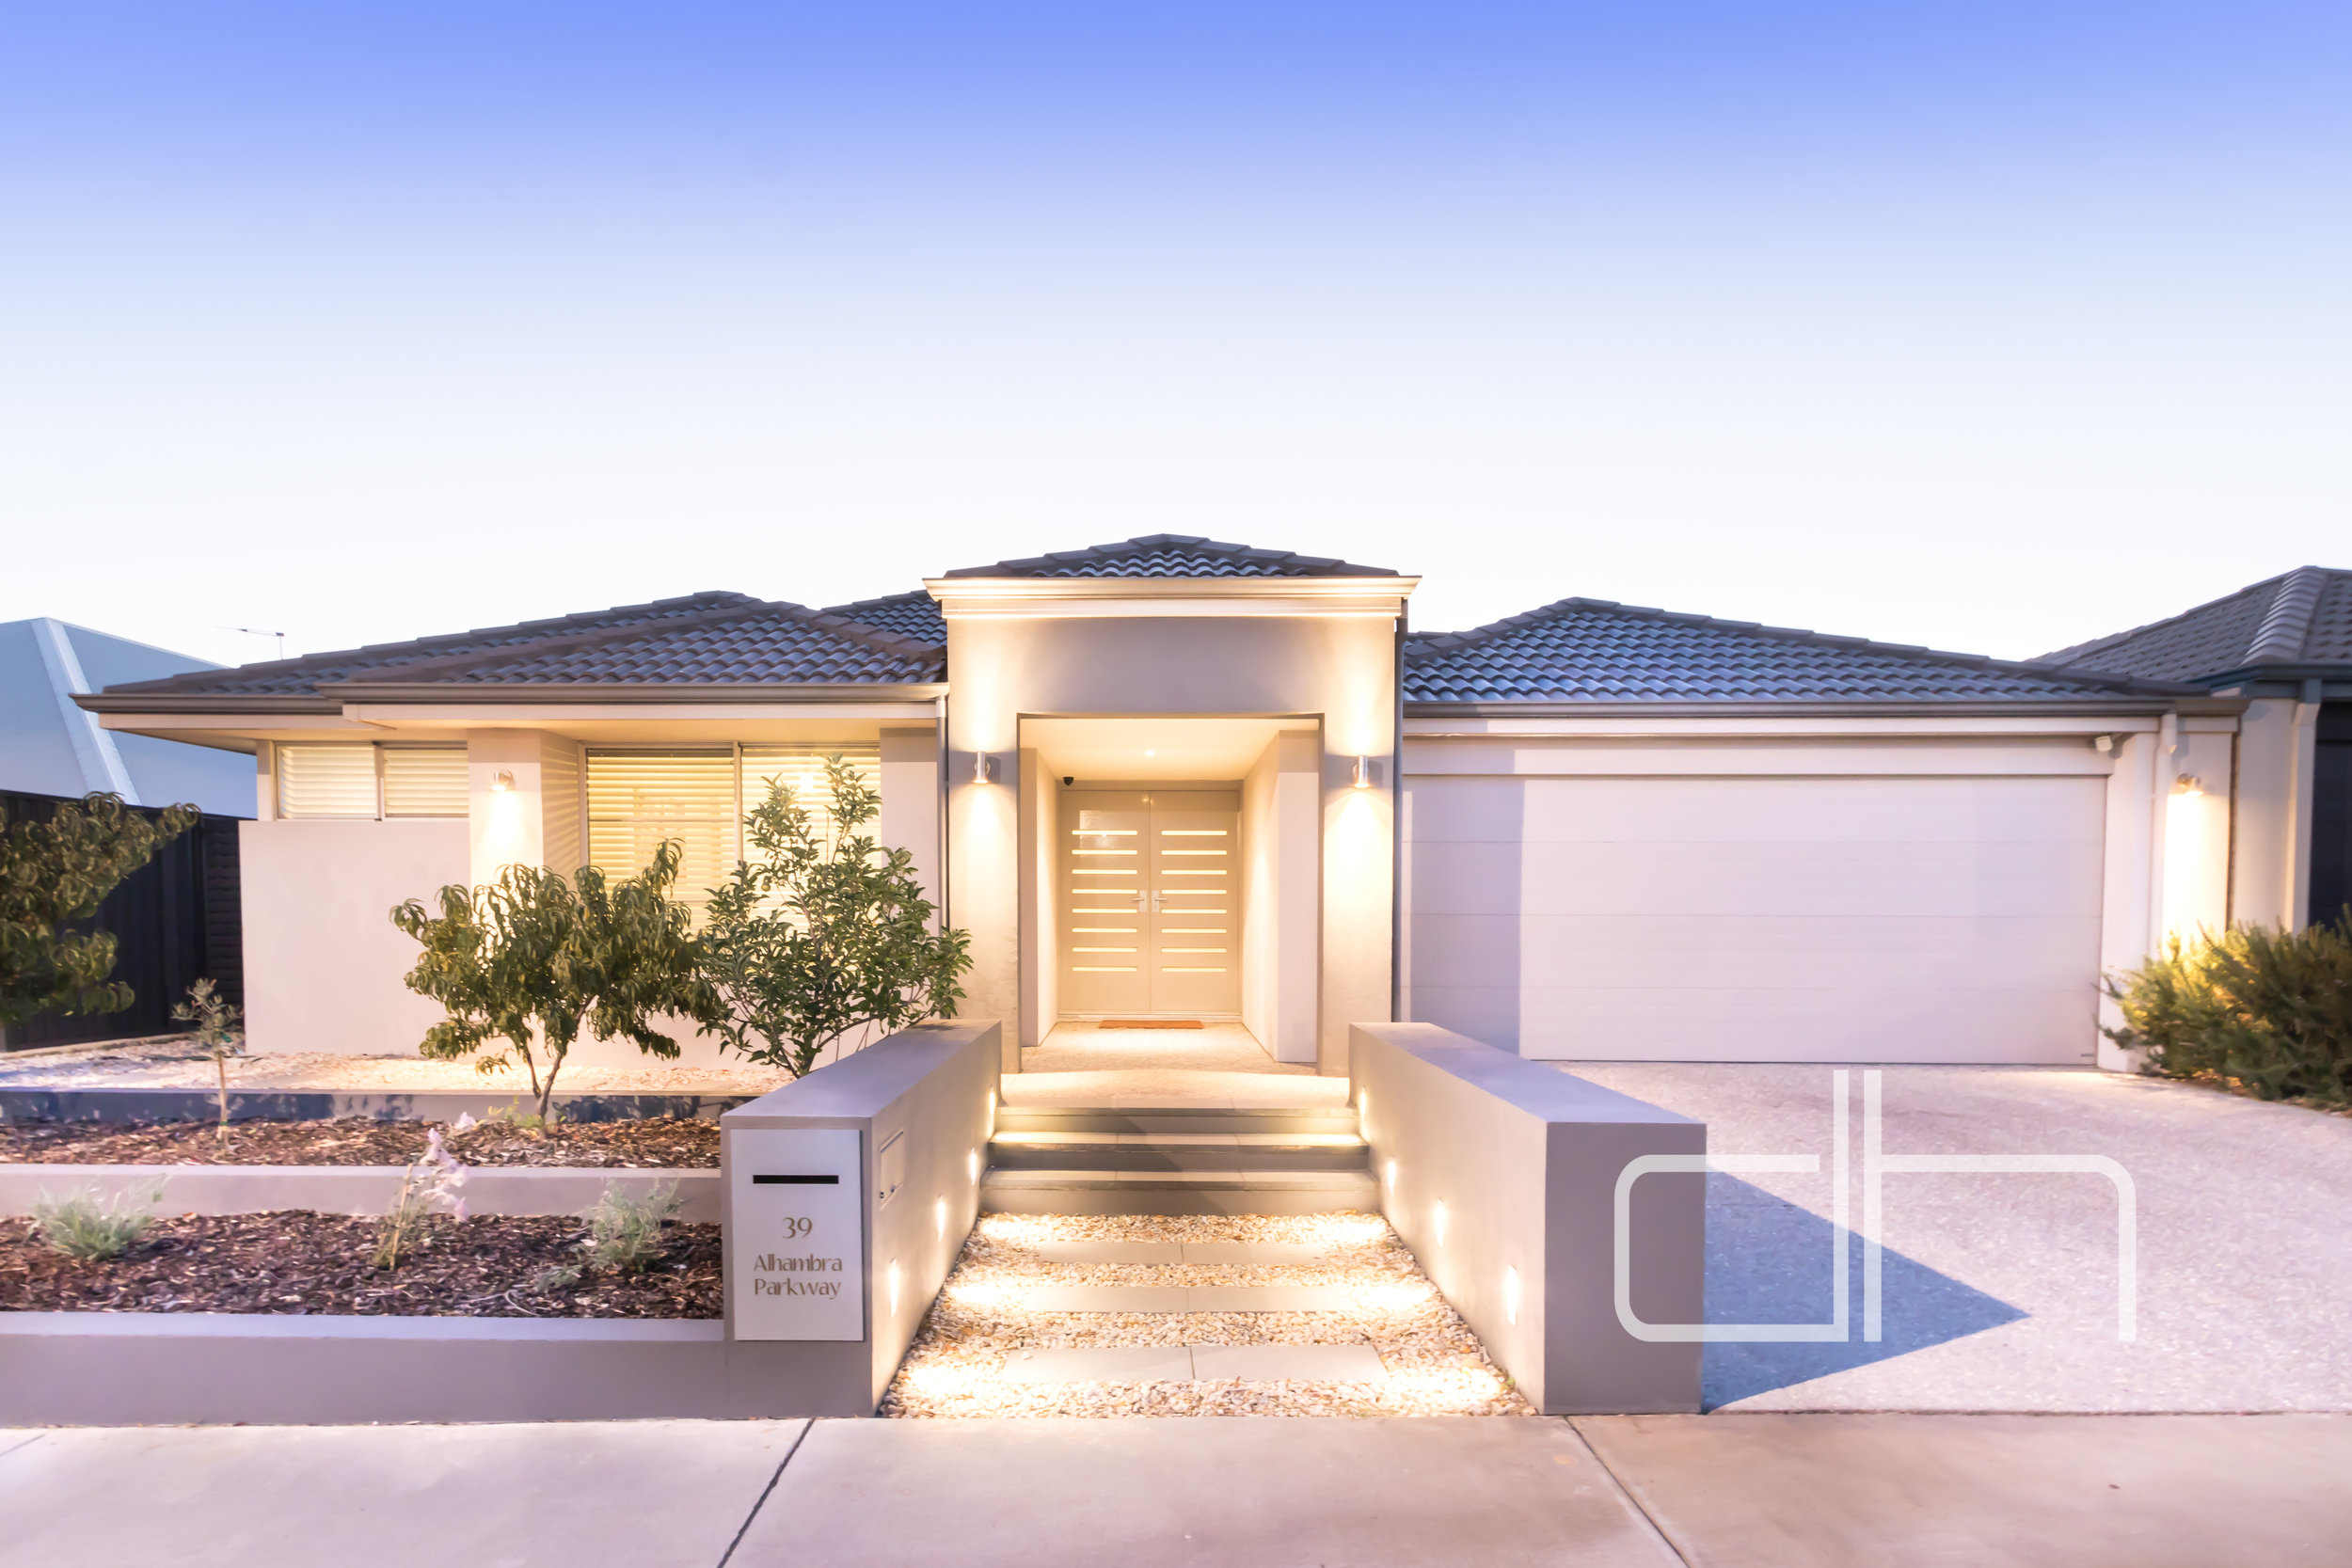 39 Alhambra Parkway $597,000